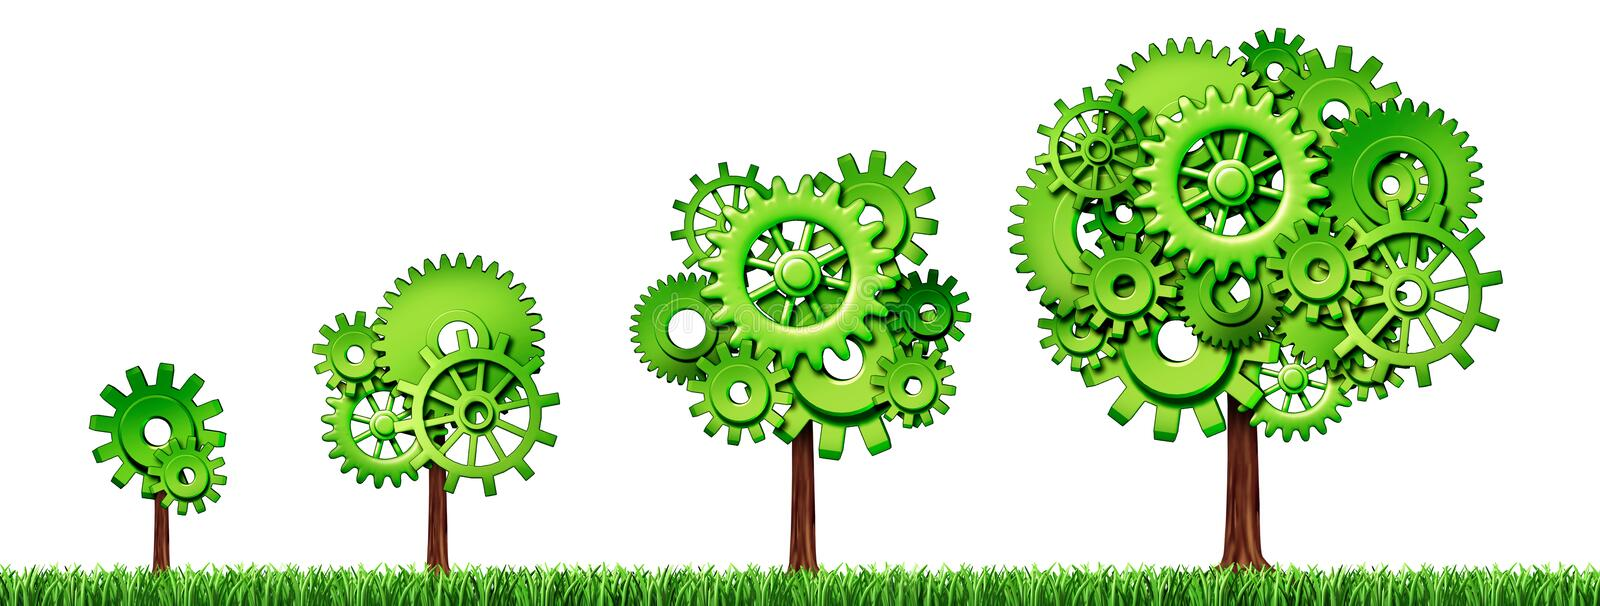 Growing economy symbol with trees and gears stock illustration